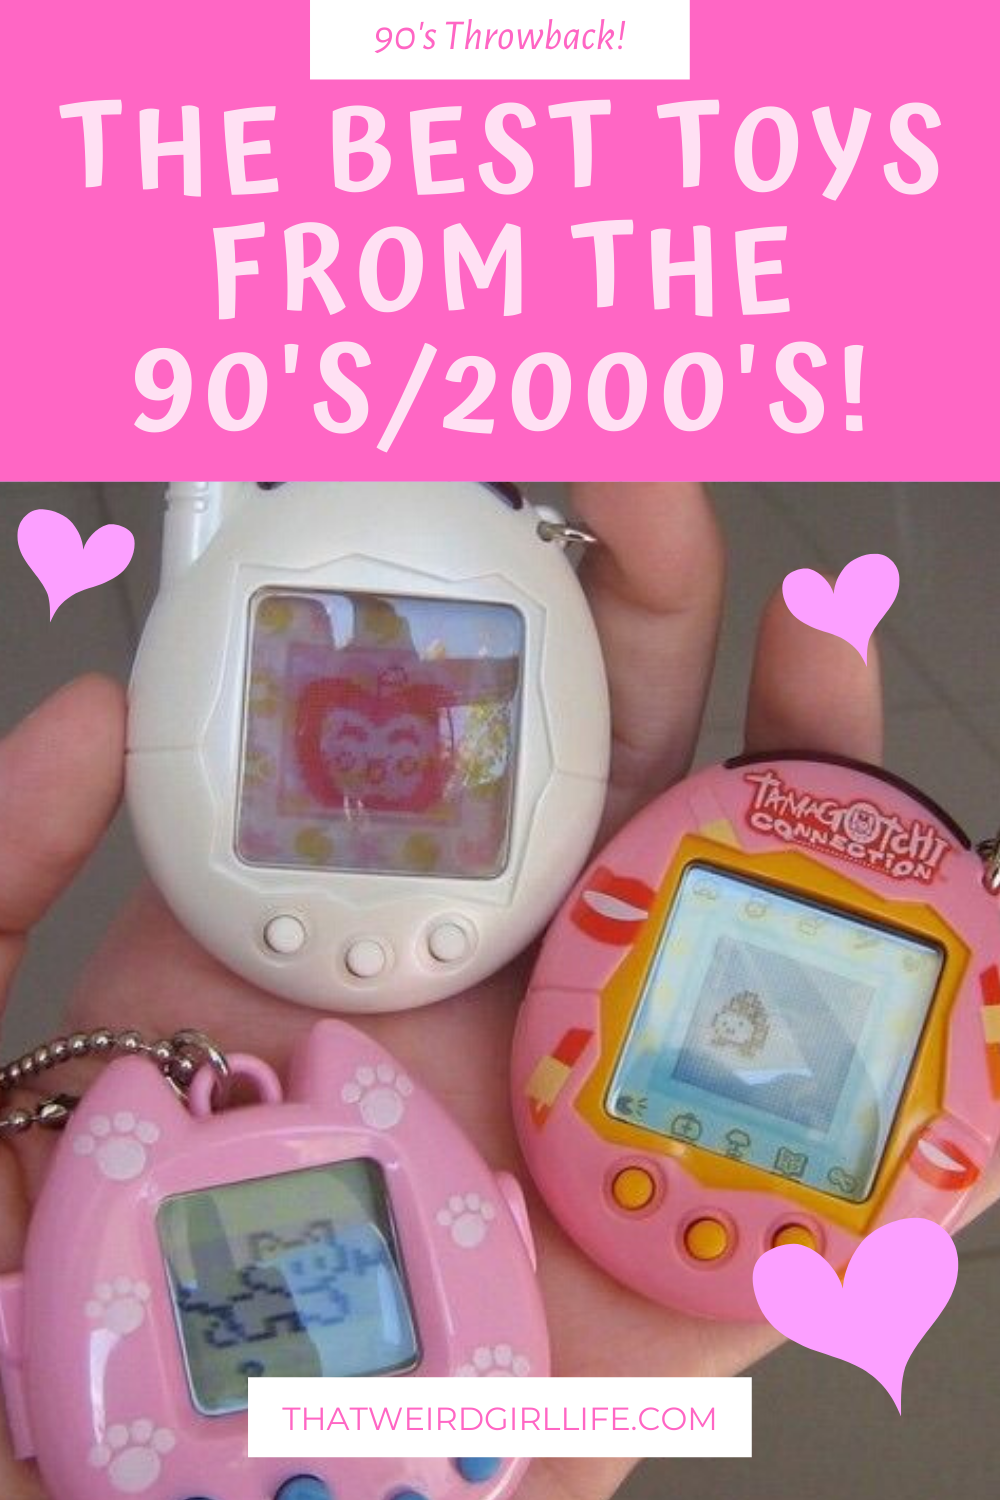 The BEST Toys From the 90's/2000's! in 2020 | Cool toys ...